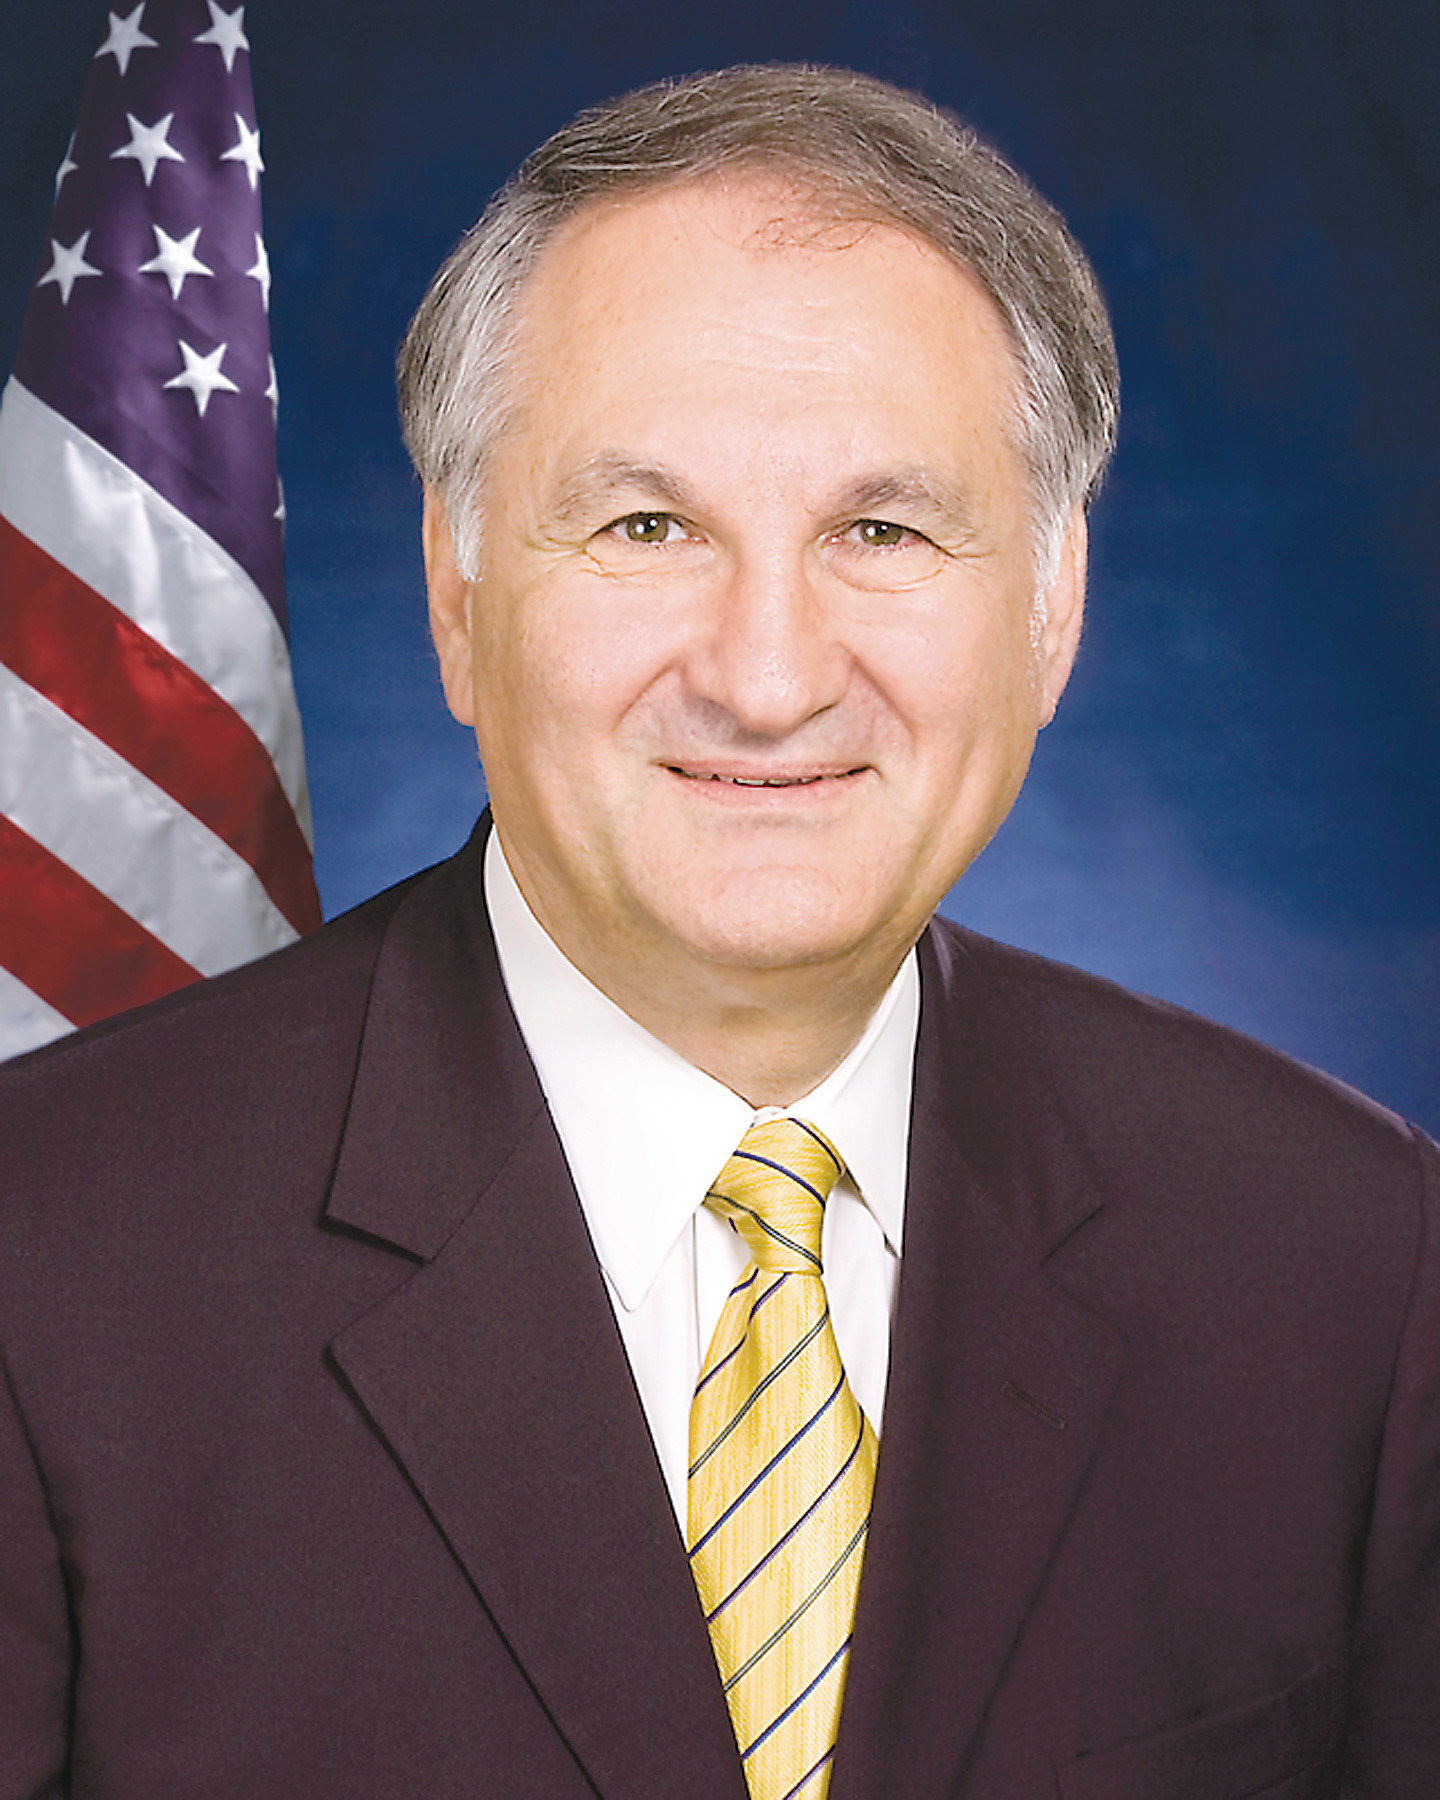 County Comptroller George Maragos